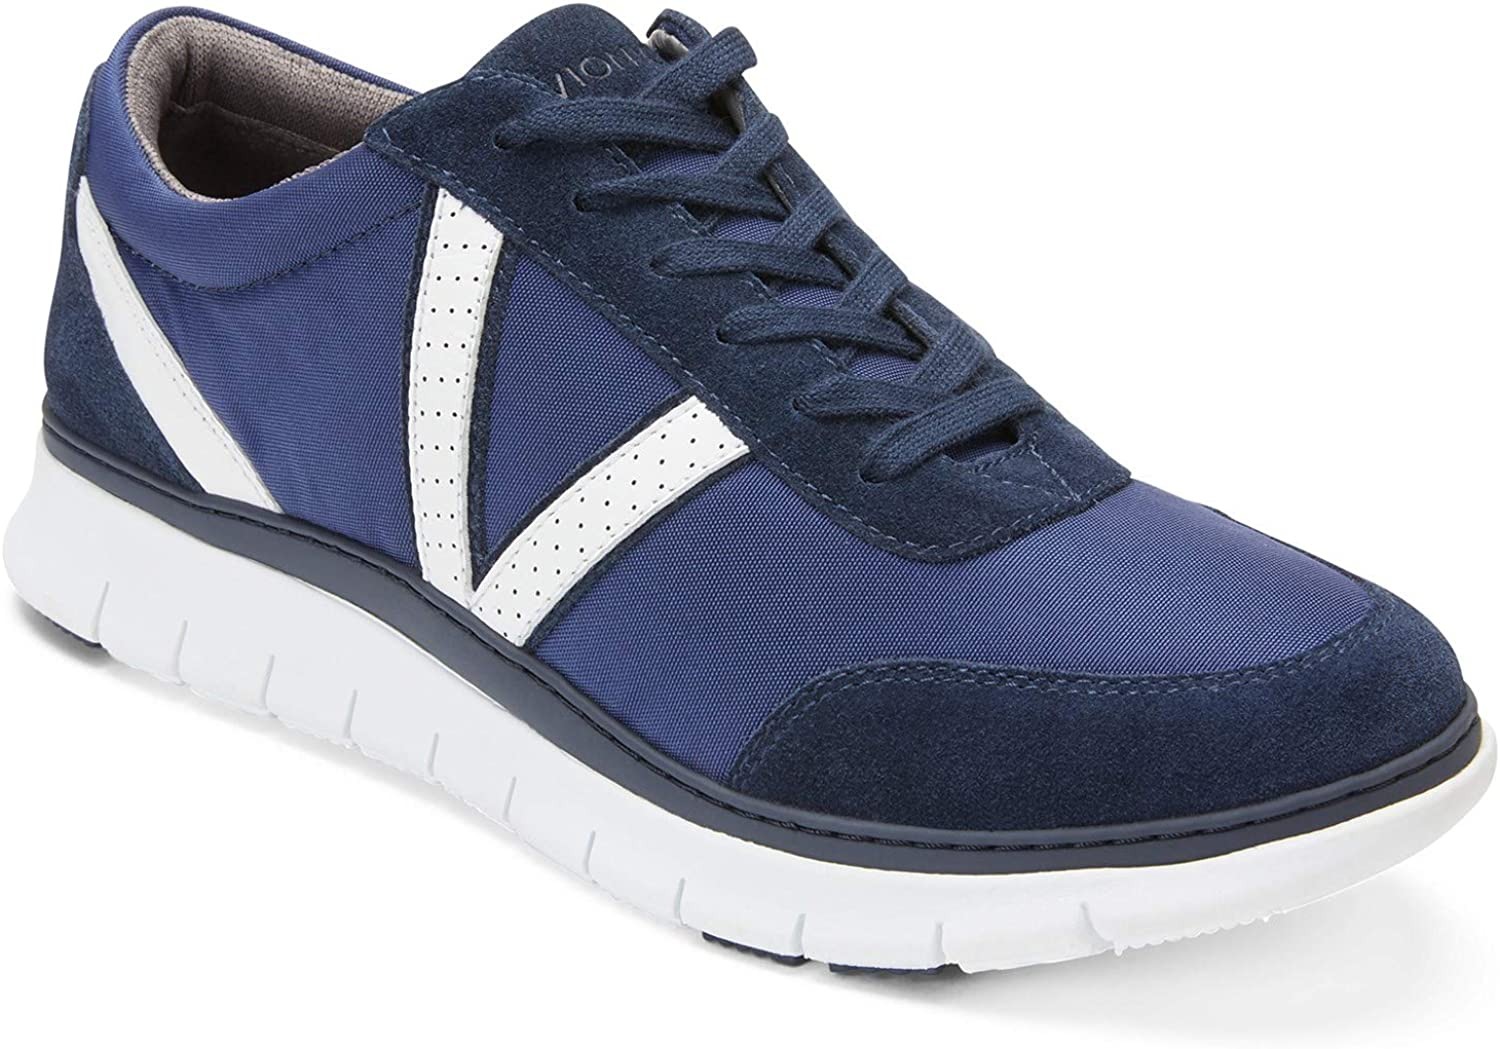 Vionic Men's Ansel Lace-up In a High quality new popularity Leisure Sneaker